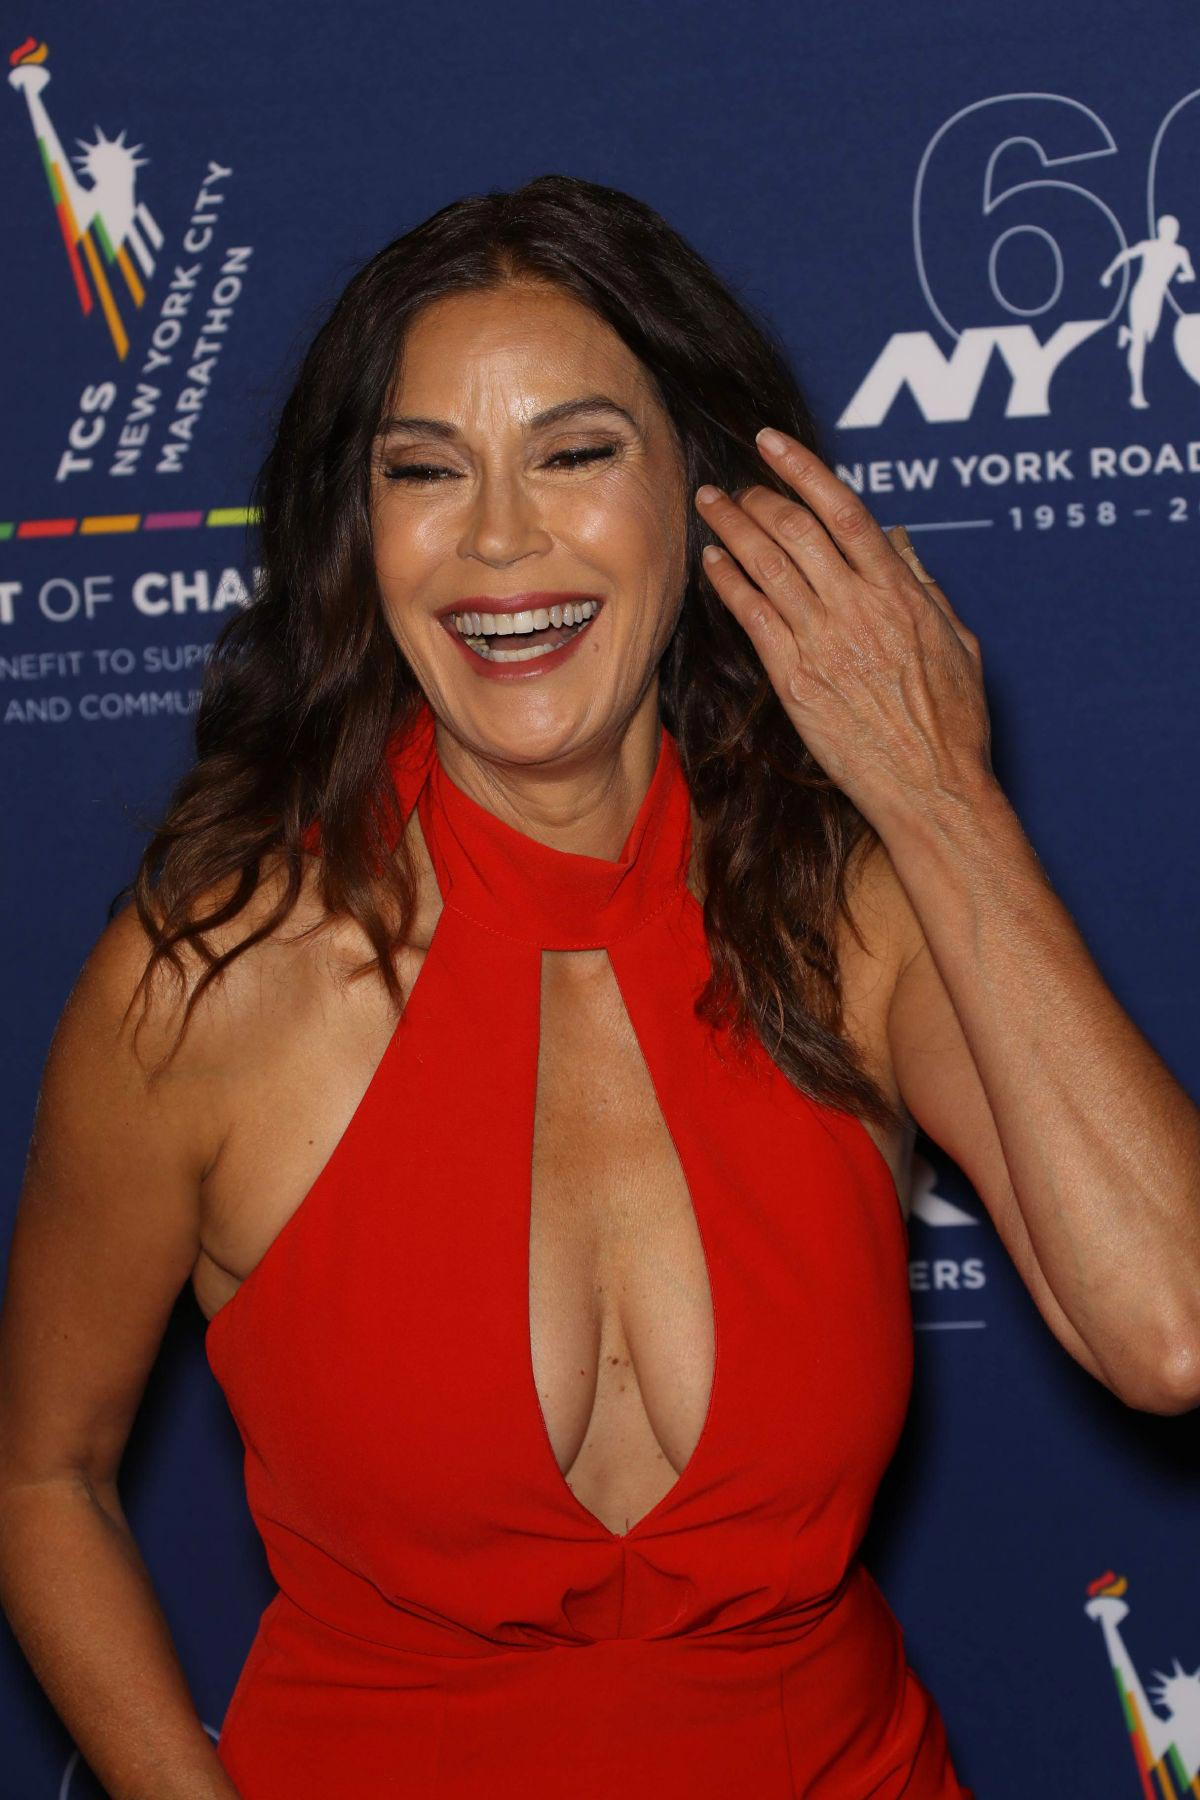 Teri Hatcher at New York Road Runners Night of Champions 2018/11/02 1